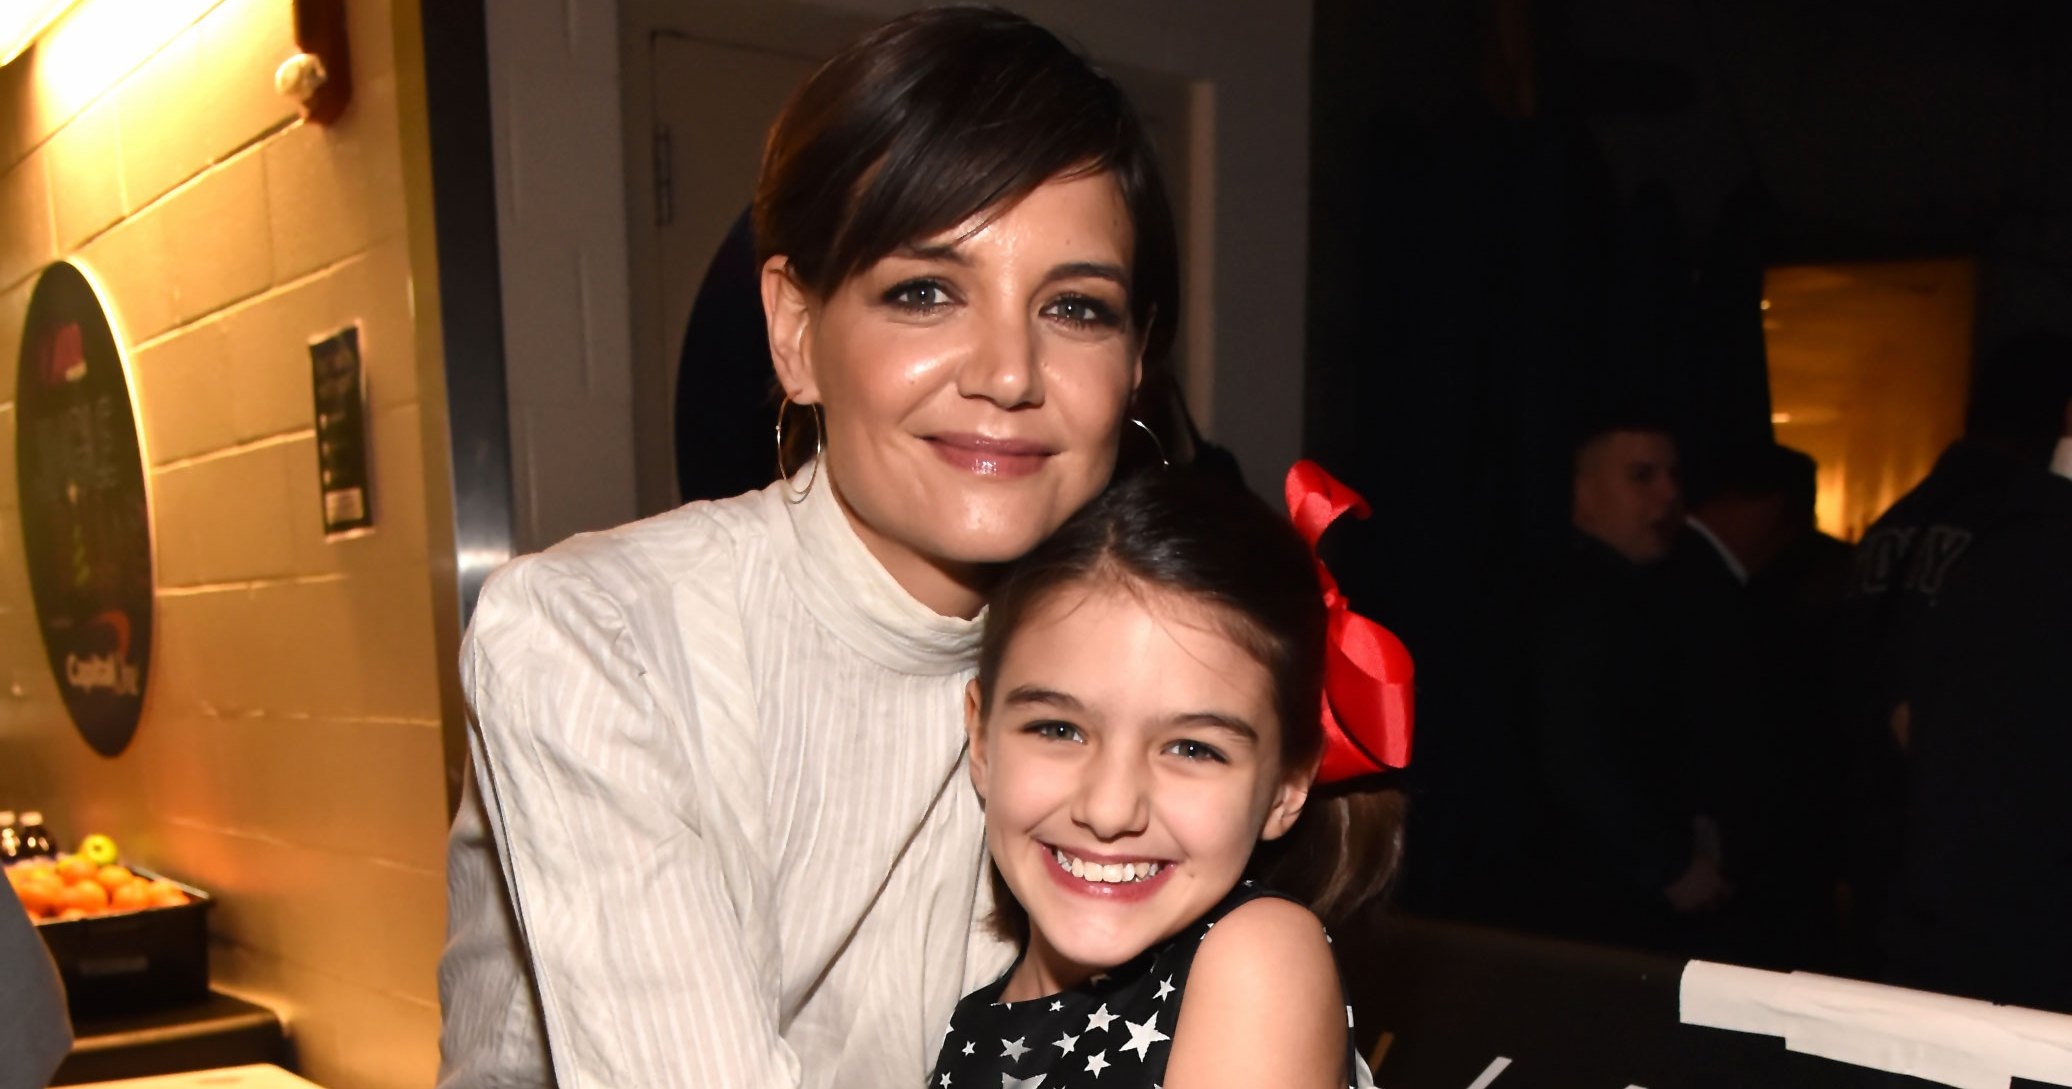 Suri Cruise Looks Like Dad Tom on Visit to Refugee Camp With Katie Holmes